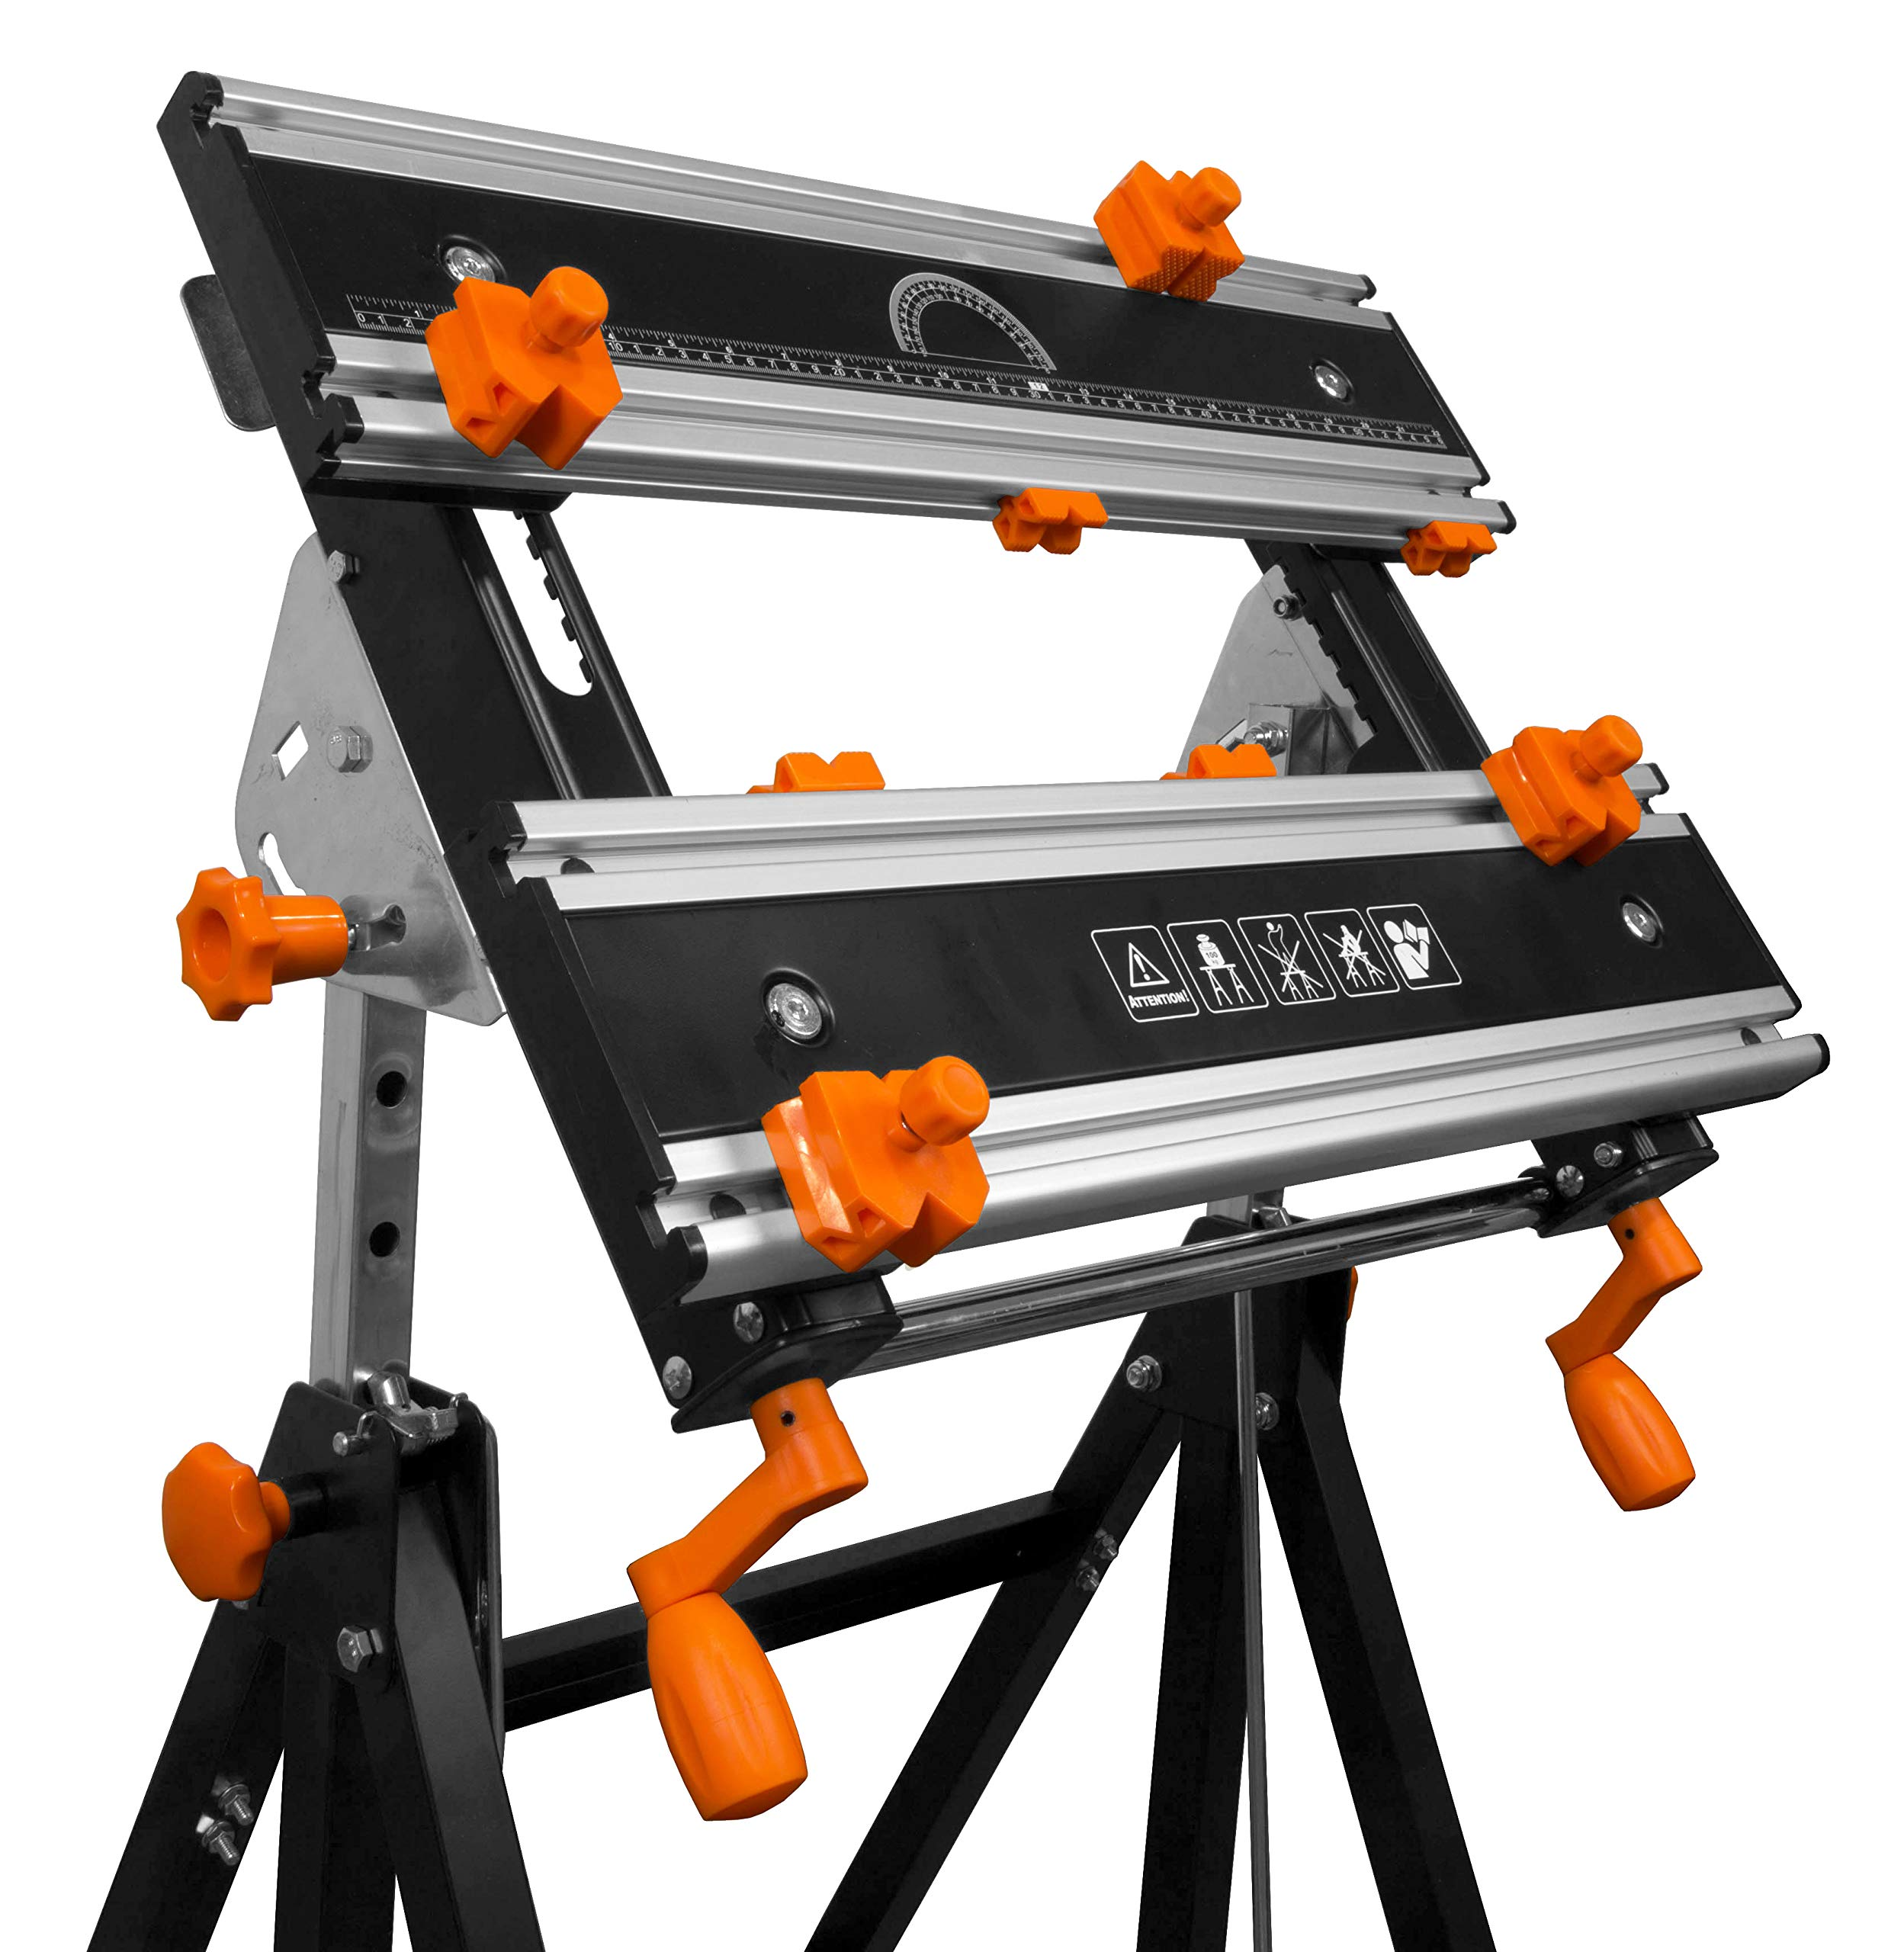 WEN 24-Inch Height Adjustable Tilting Steel Portable Work Bench and Vise with 8 Sliding Clamps WEN 24-Inch Height Adjustable Tilting Steel Portable Work Bench and Vise with 8 Sliding Clamps by Havipro (Image #4)